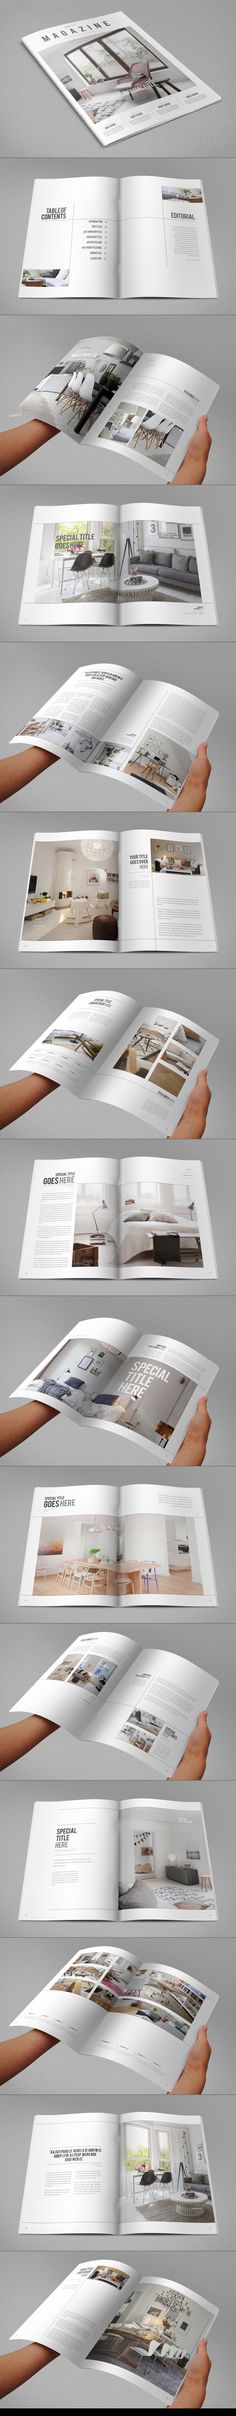 Minimal Interior Design Magazine on Behance - Fiverr - an online platform for freelancer. Fiverr is also a great place for you to outsource tasks such as writing making a vide creating a logo. - Minimal Interior Design Magazine on Behance Interior Design Magazine, Magazine Design Inspiration, Magazine Layout Design, Graphic Design Inspiration, Design Food, Art Design, Book Design, Cover Design, Magazine Page Layouts